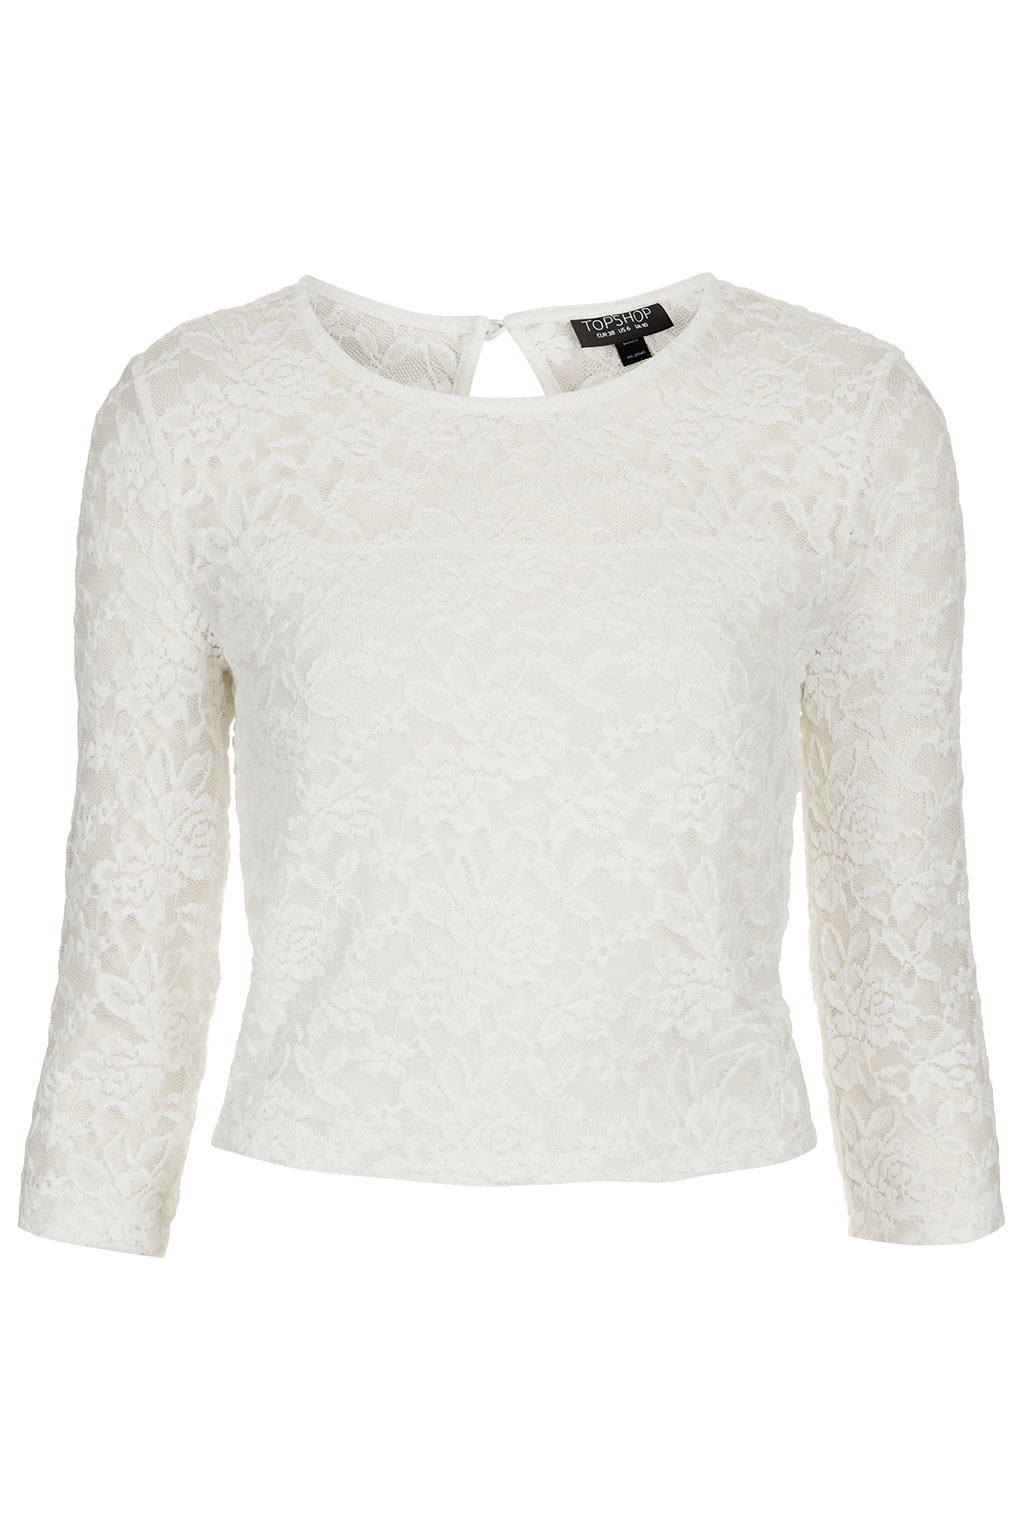 Lyst topshop floral lace crop top in white gallery mightylinksfo